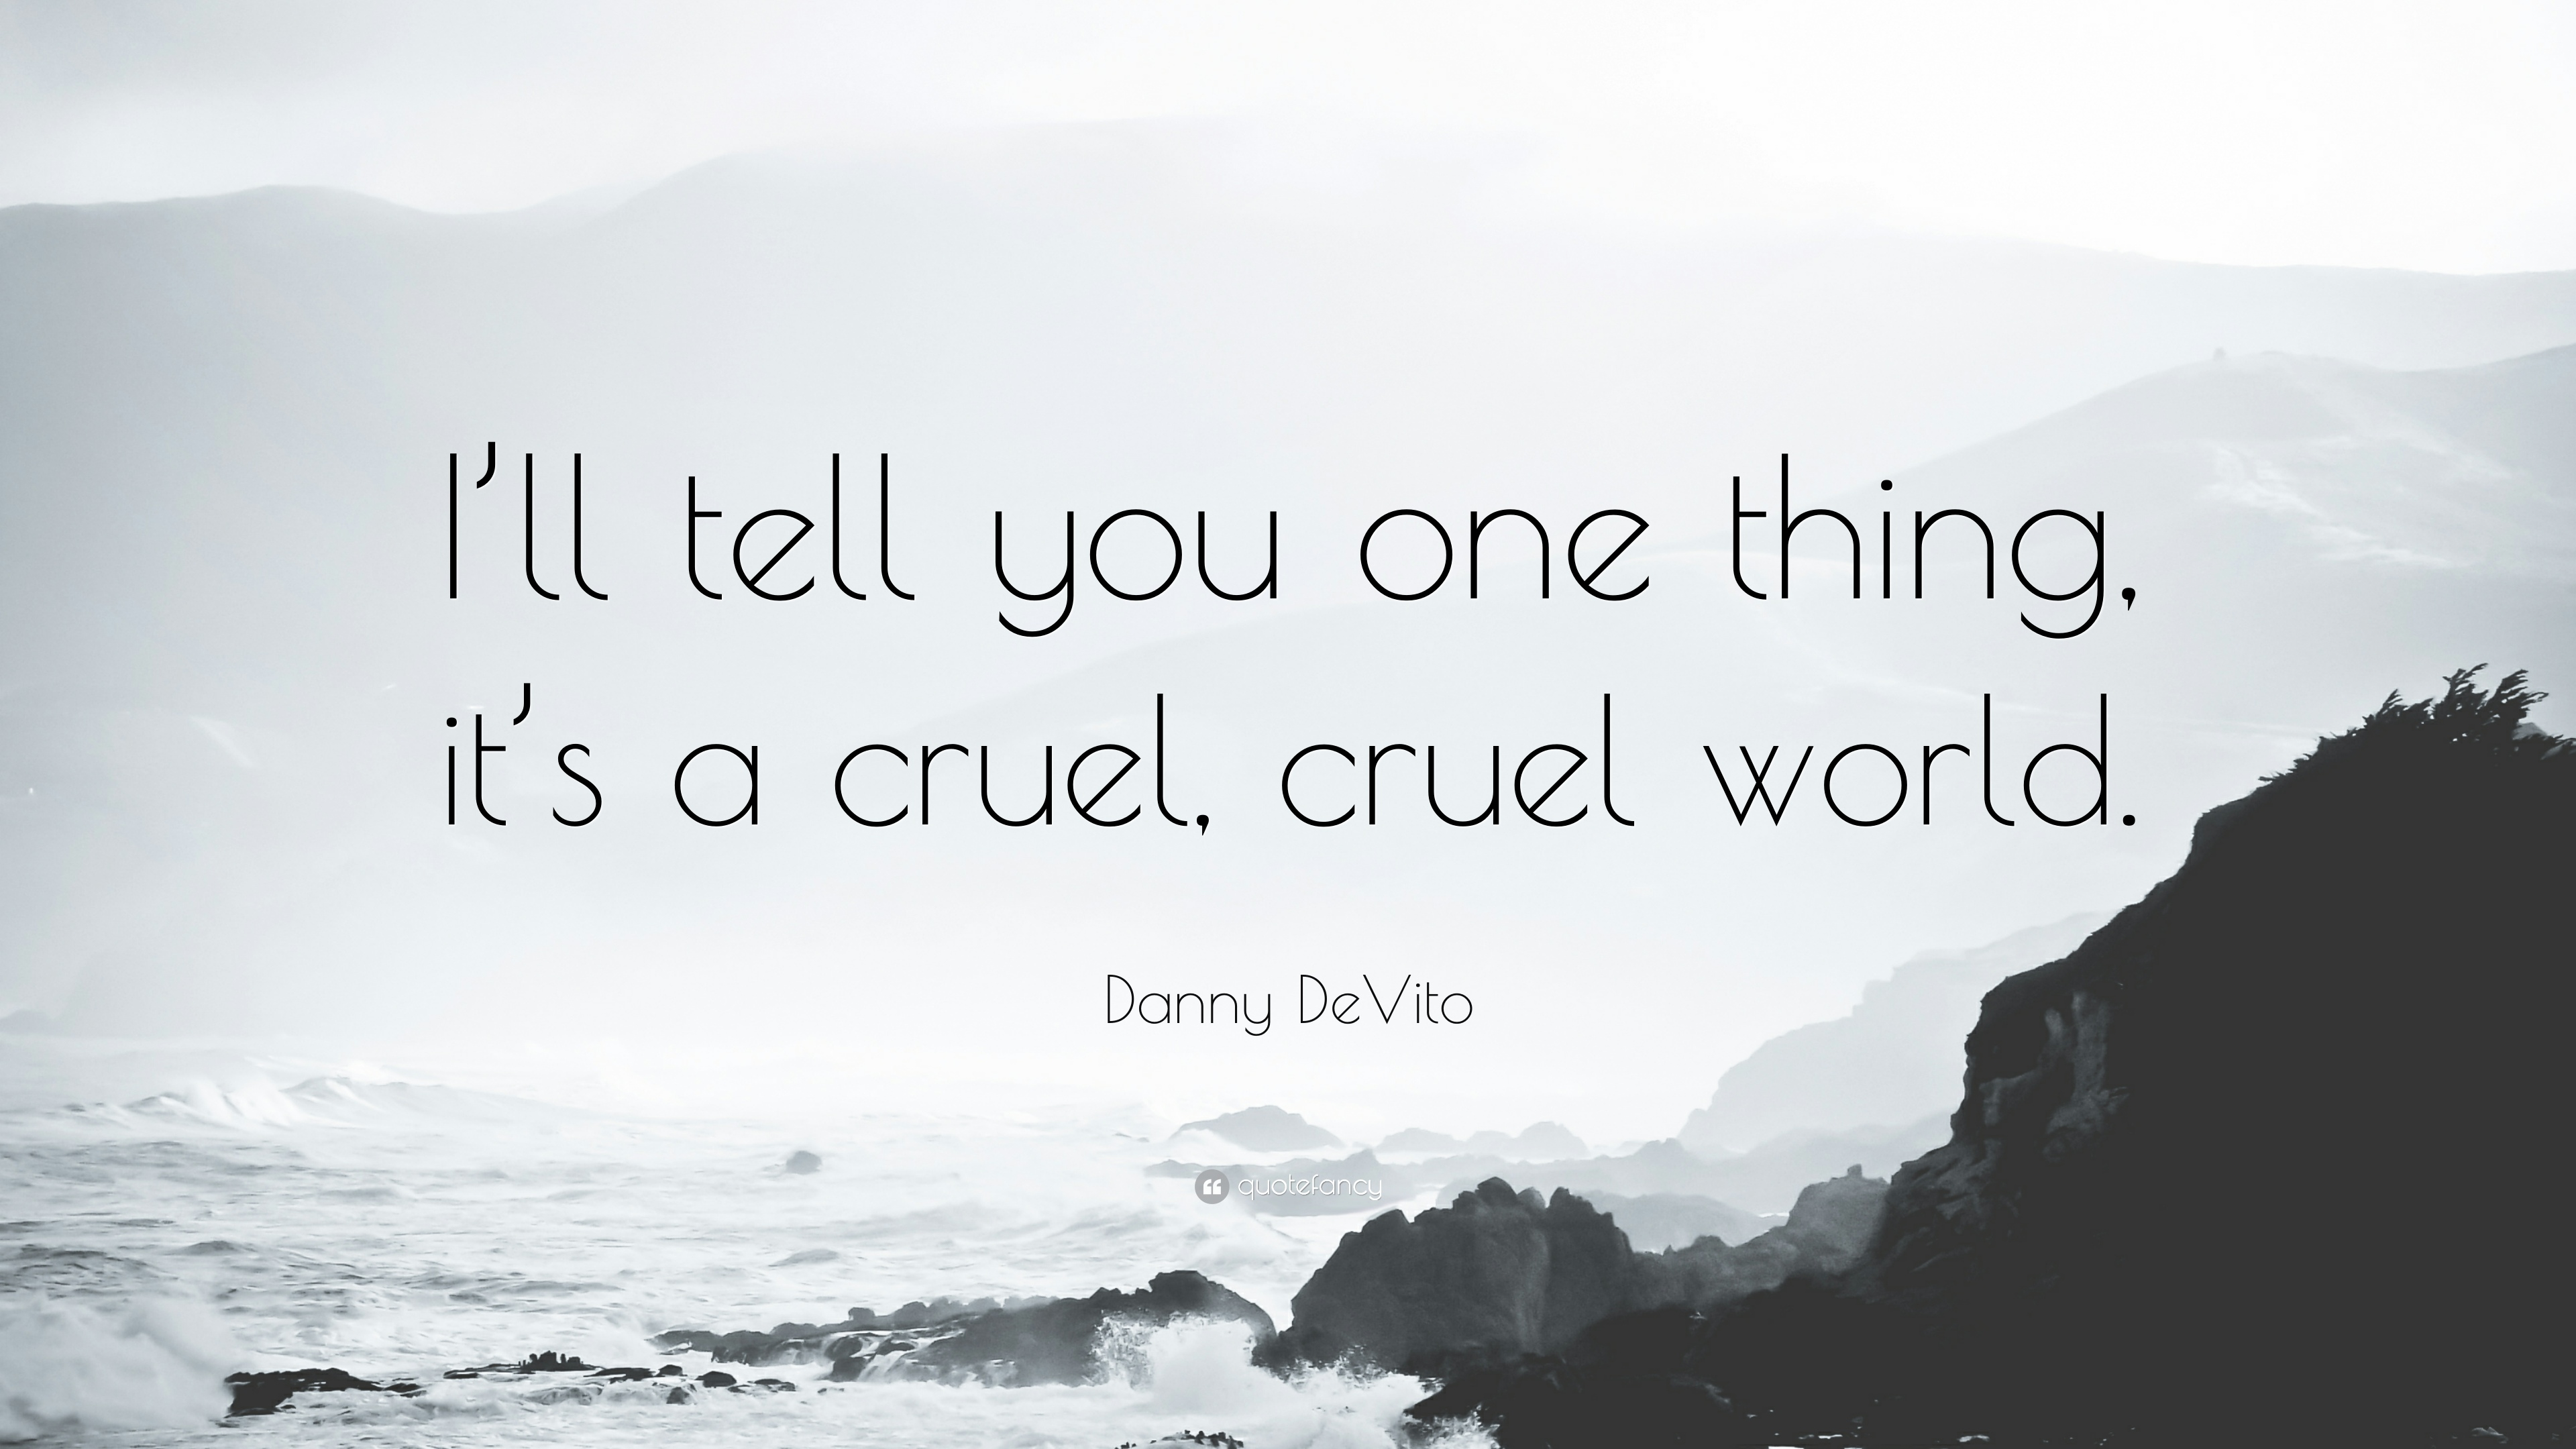 Danny DeVito Quotes (28 wallpapers) - Quotefancy